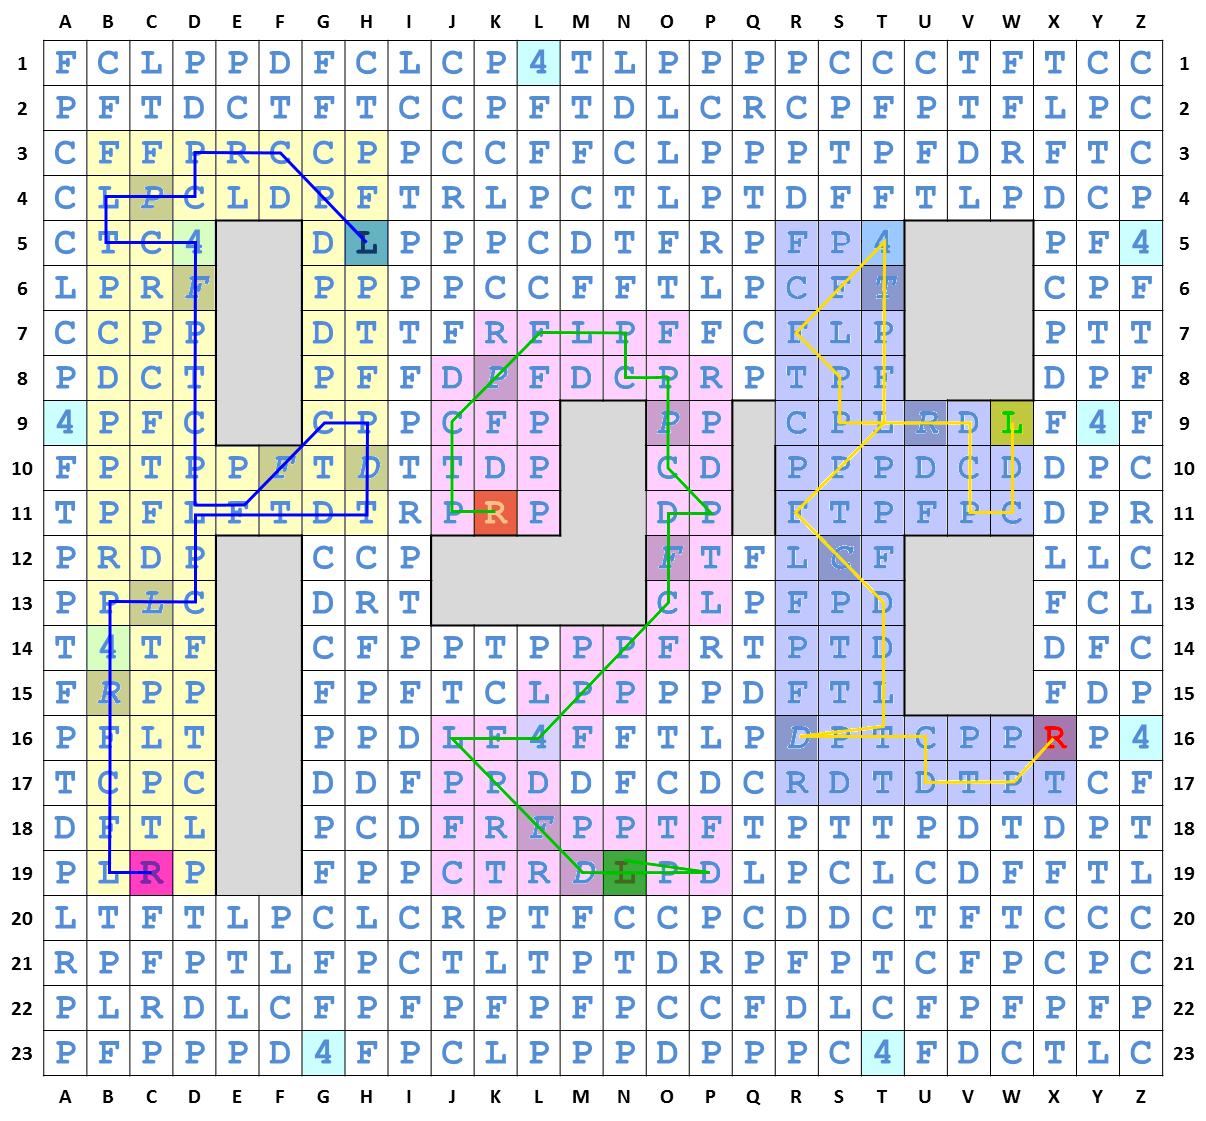 http://www.prise2tete.fr/upload/cogito-BeatChess5_2.png